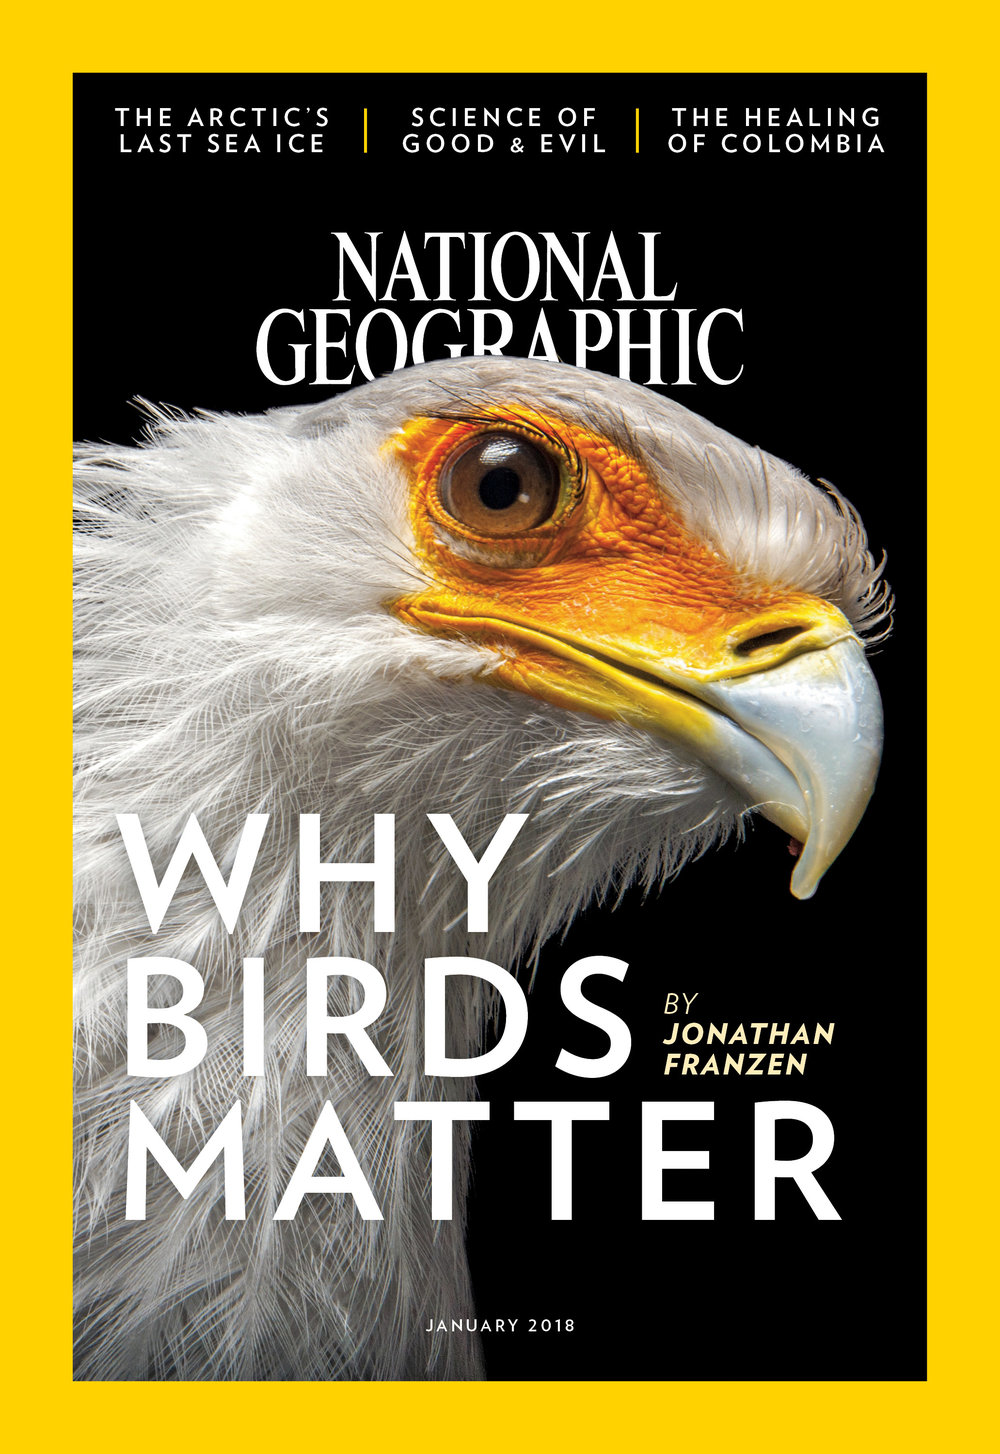 national-geographic-magazine-january-2018-why-birds-matter-cover.jpg